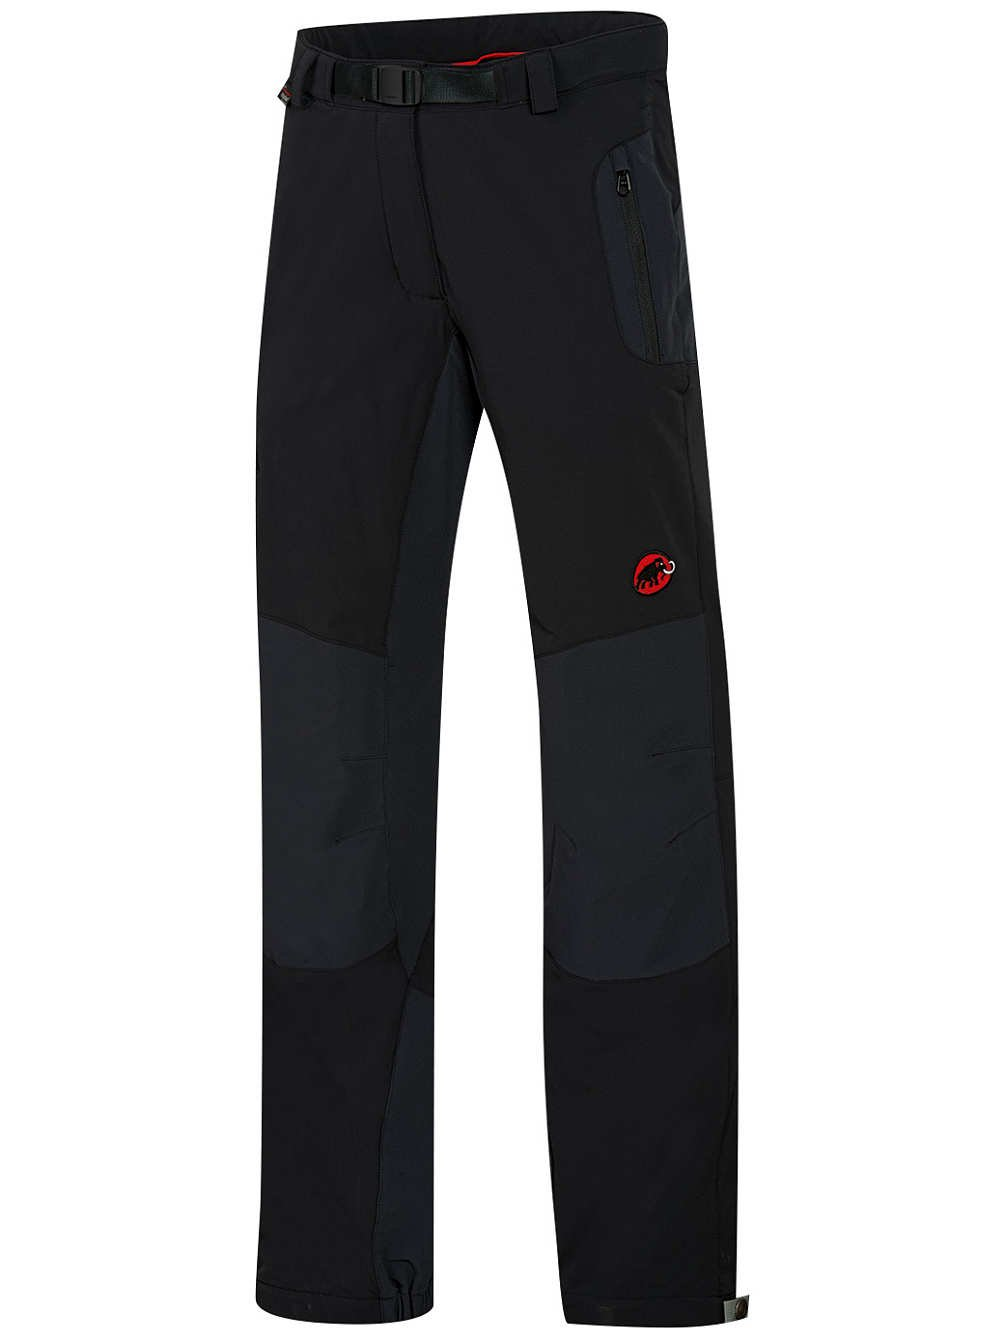 Mammut Courmayeur Advanced Pants Women (Softshell Pants)